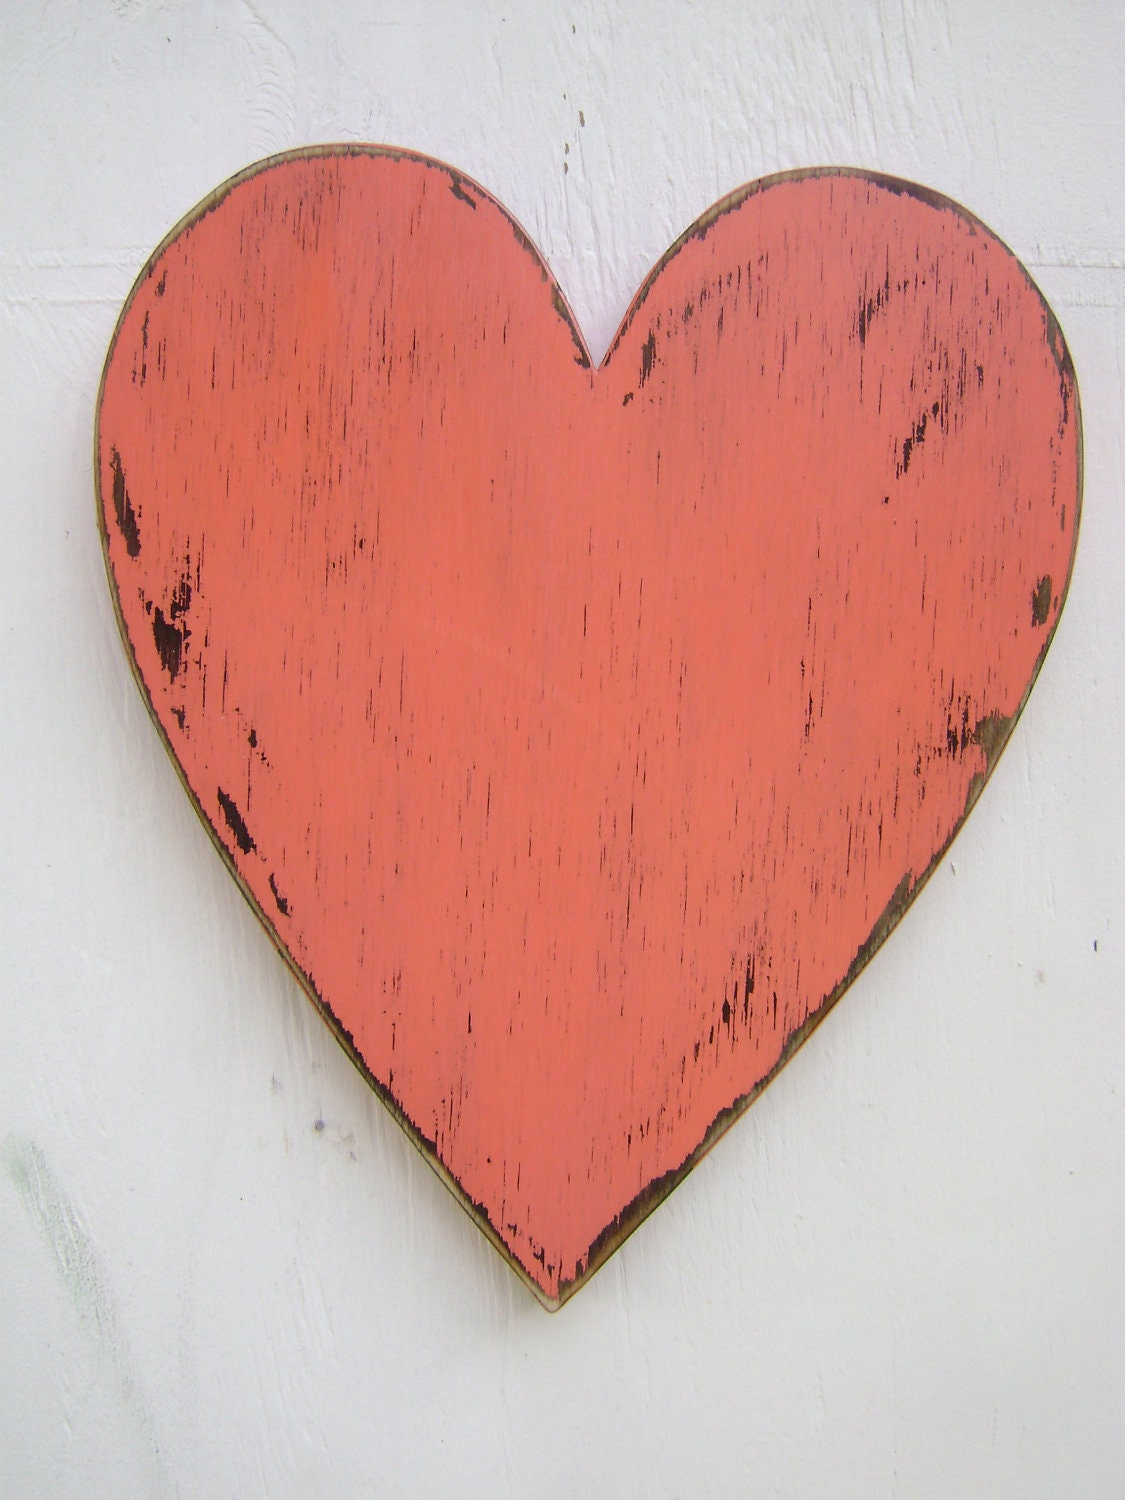 Shabby Chic Rustic Wooden Heart Painted Coral Blush And